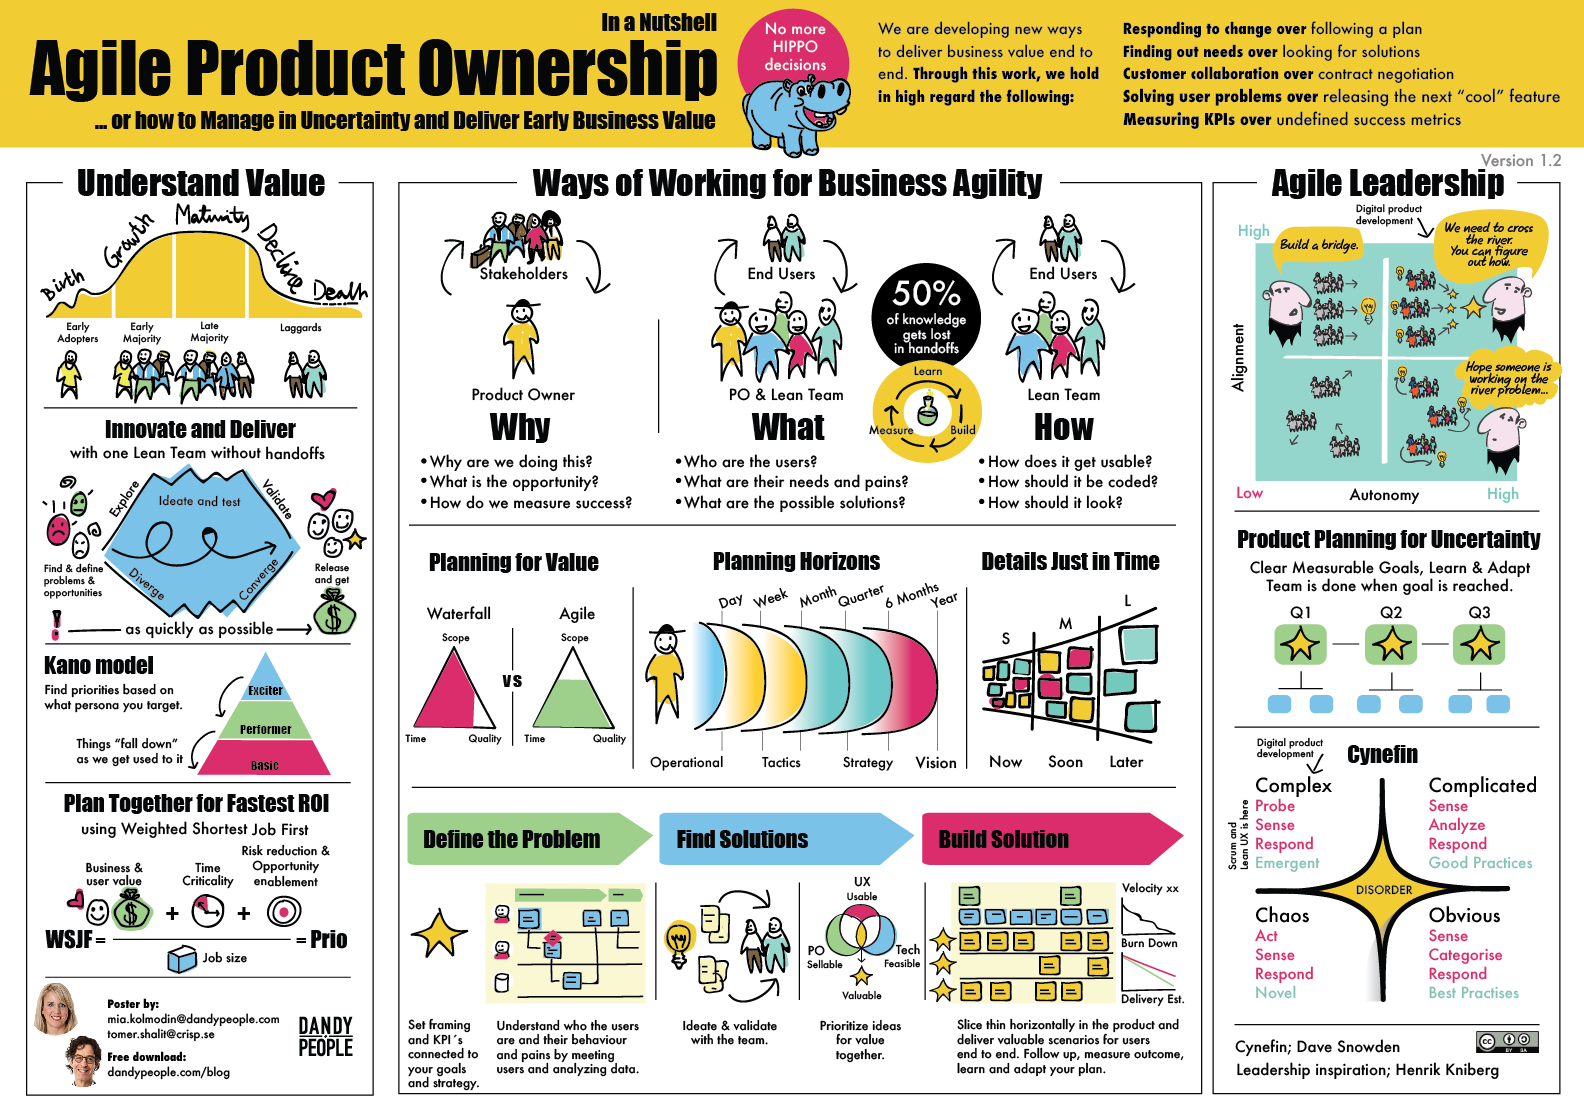 free Agile Product Ownership in a Nutshell poster